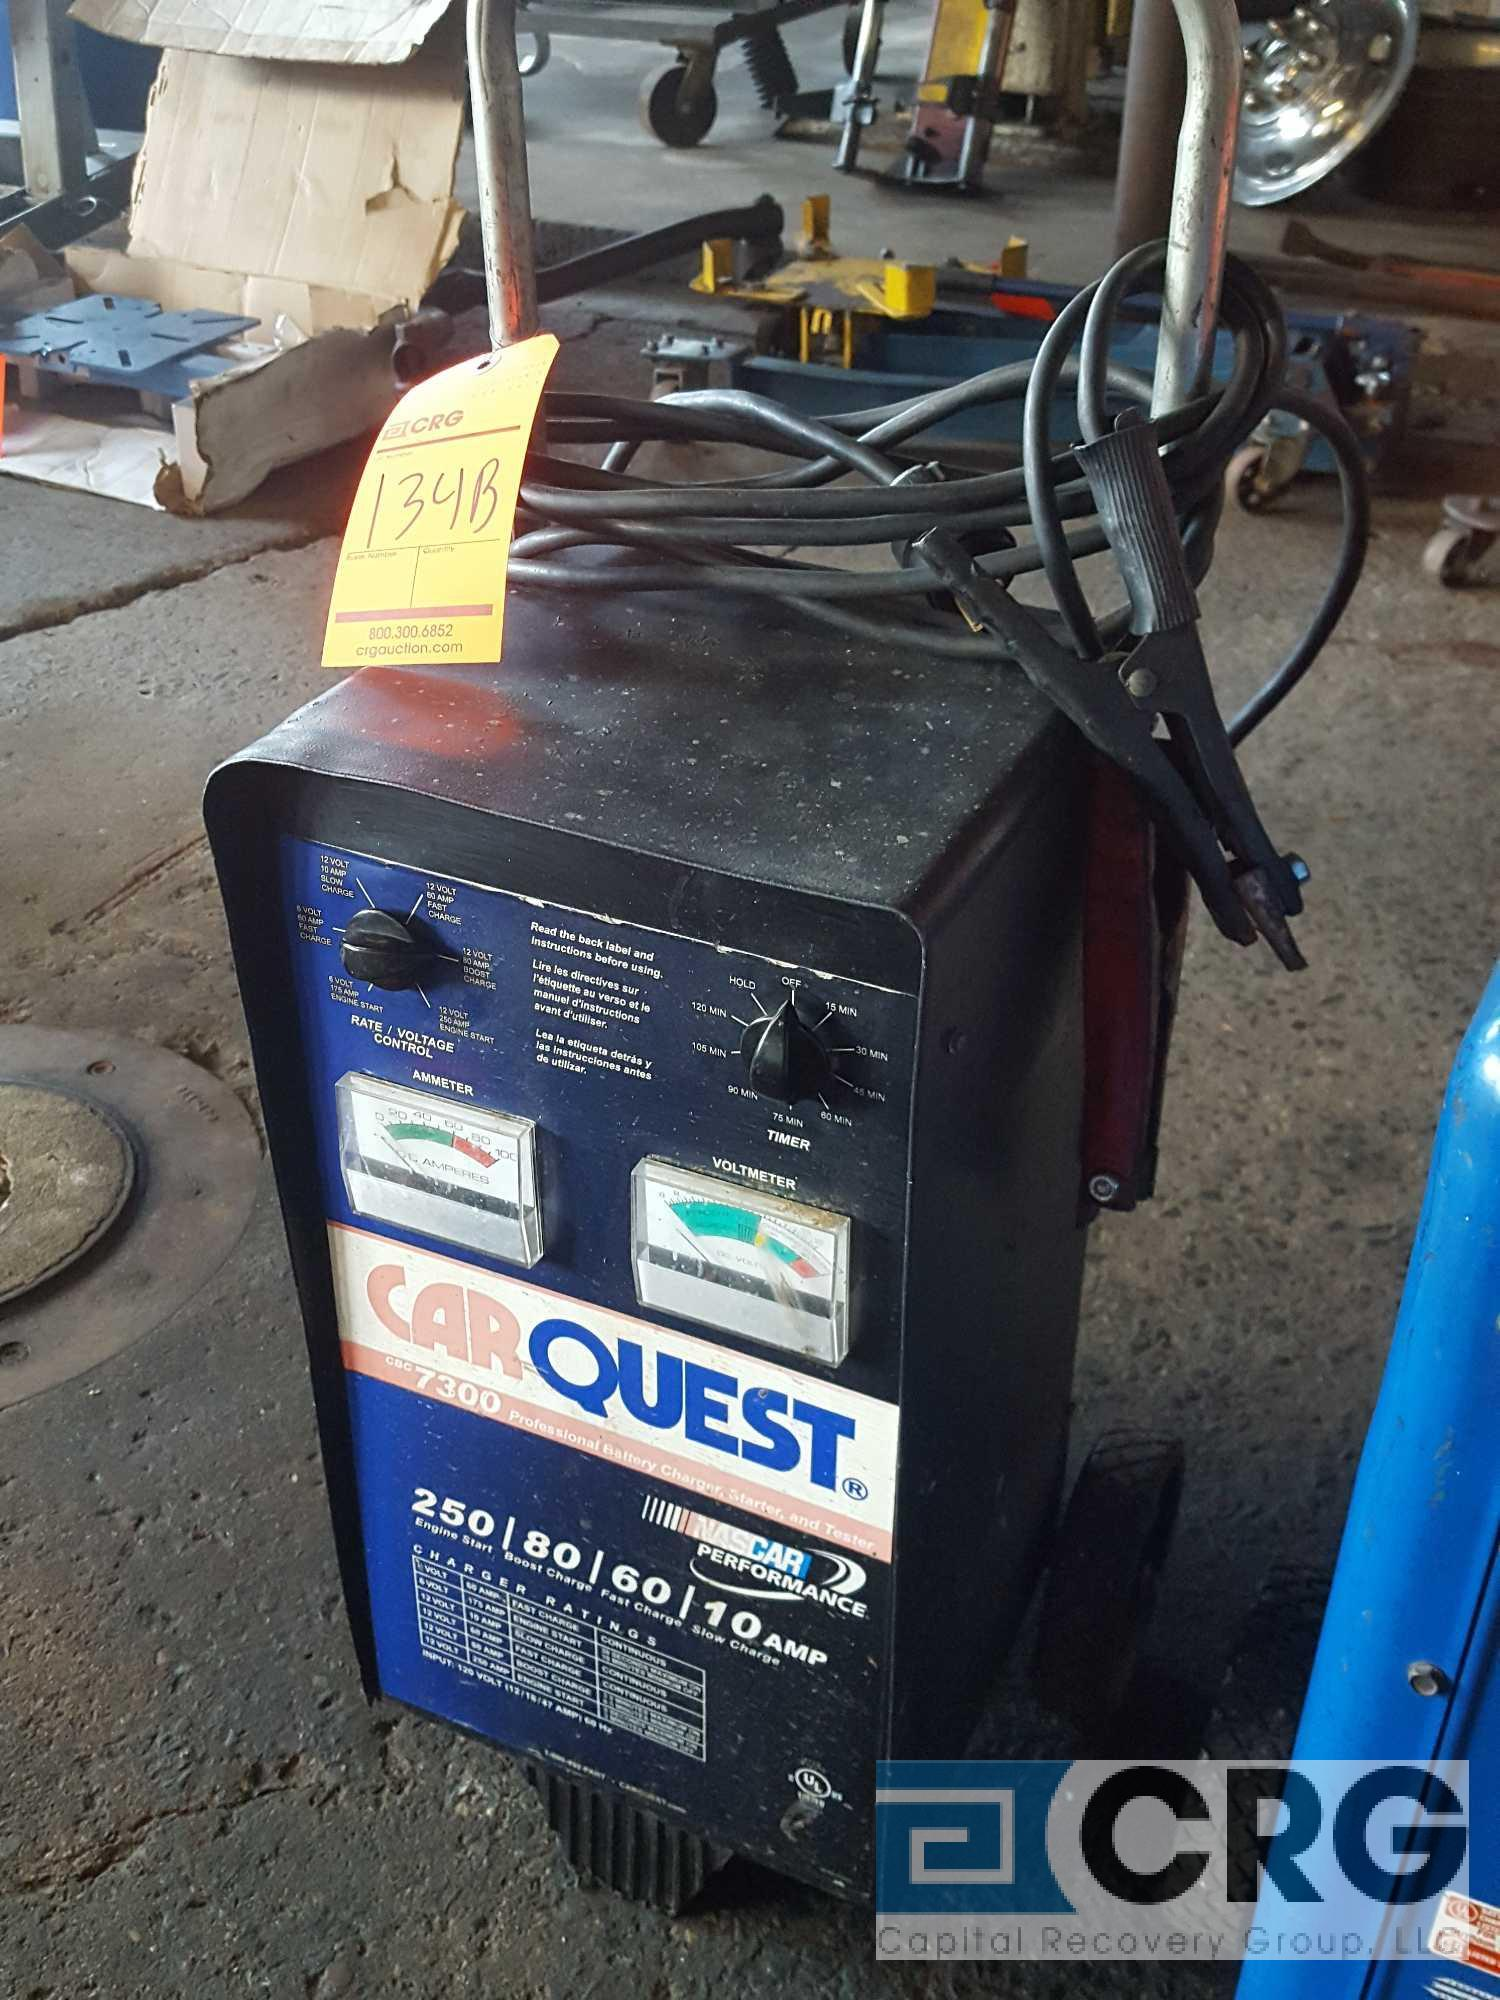 Carquest portable battery charger